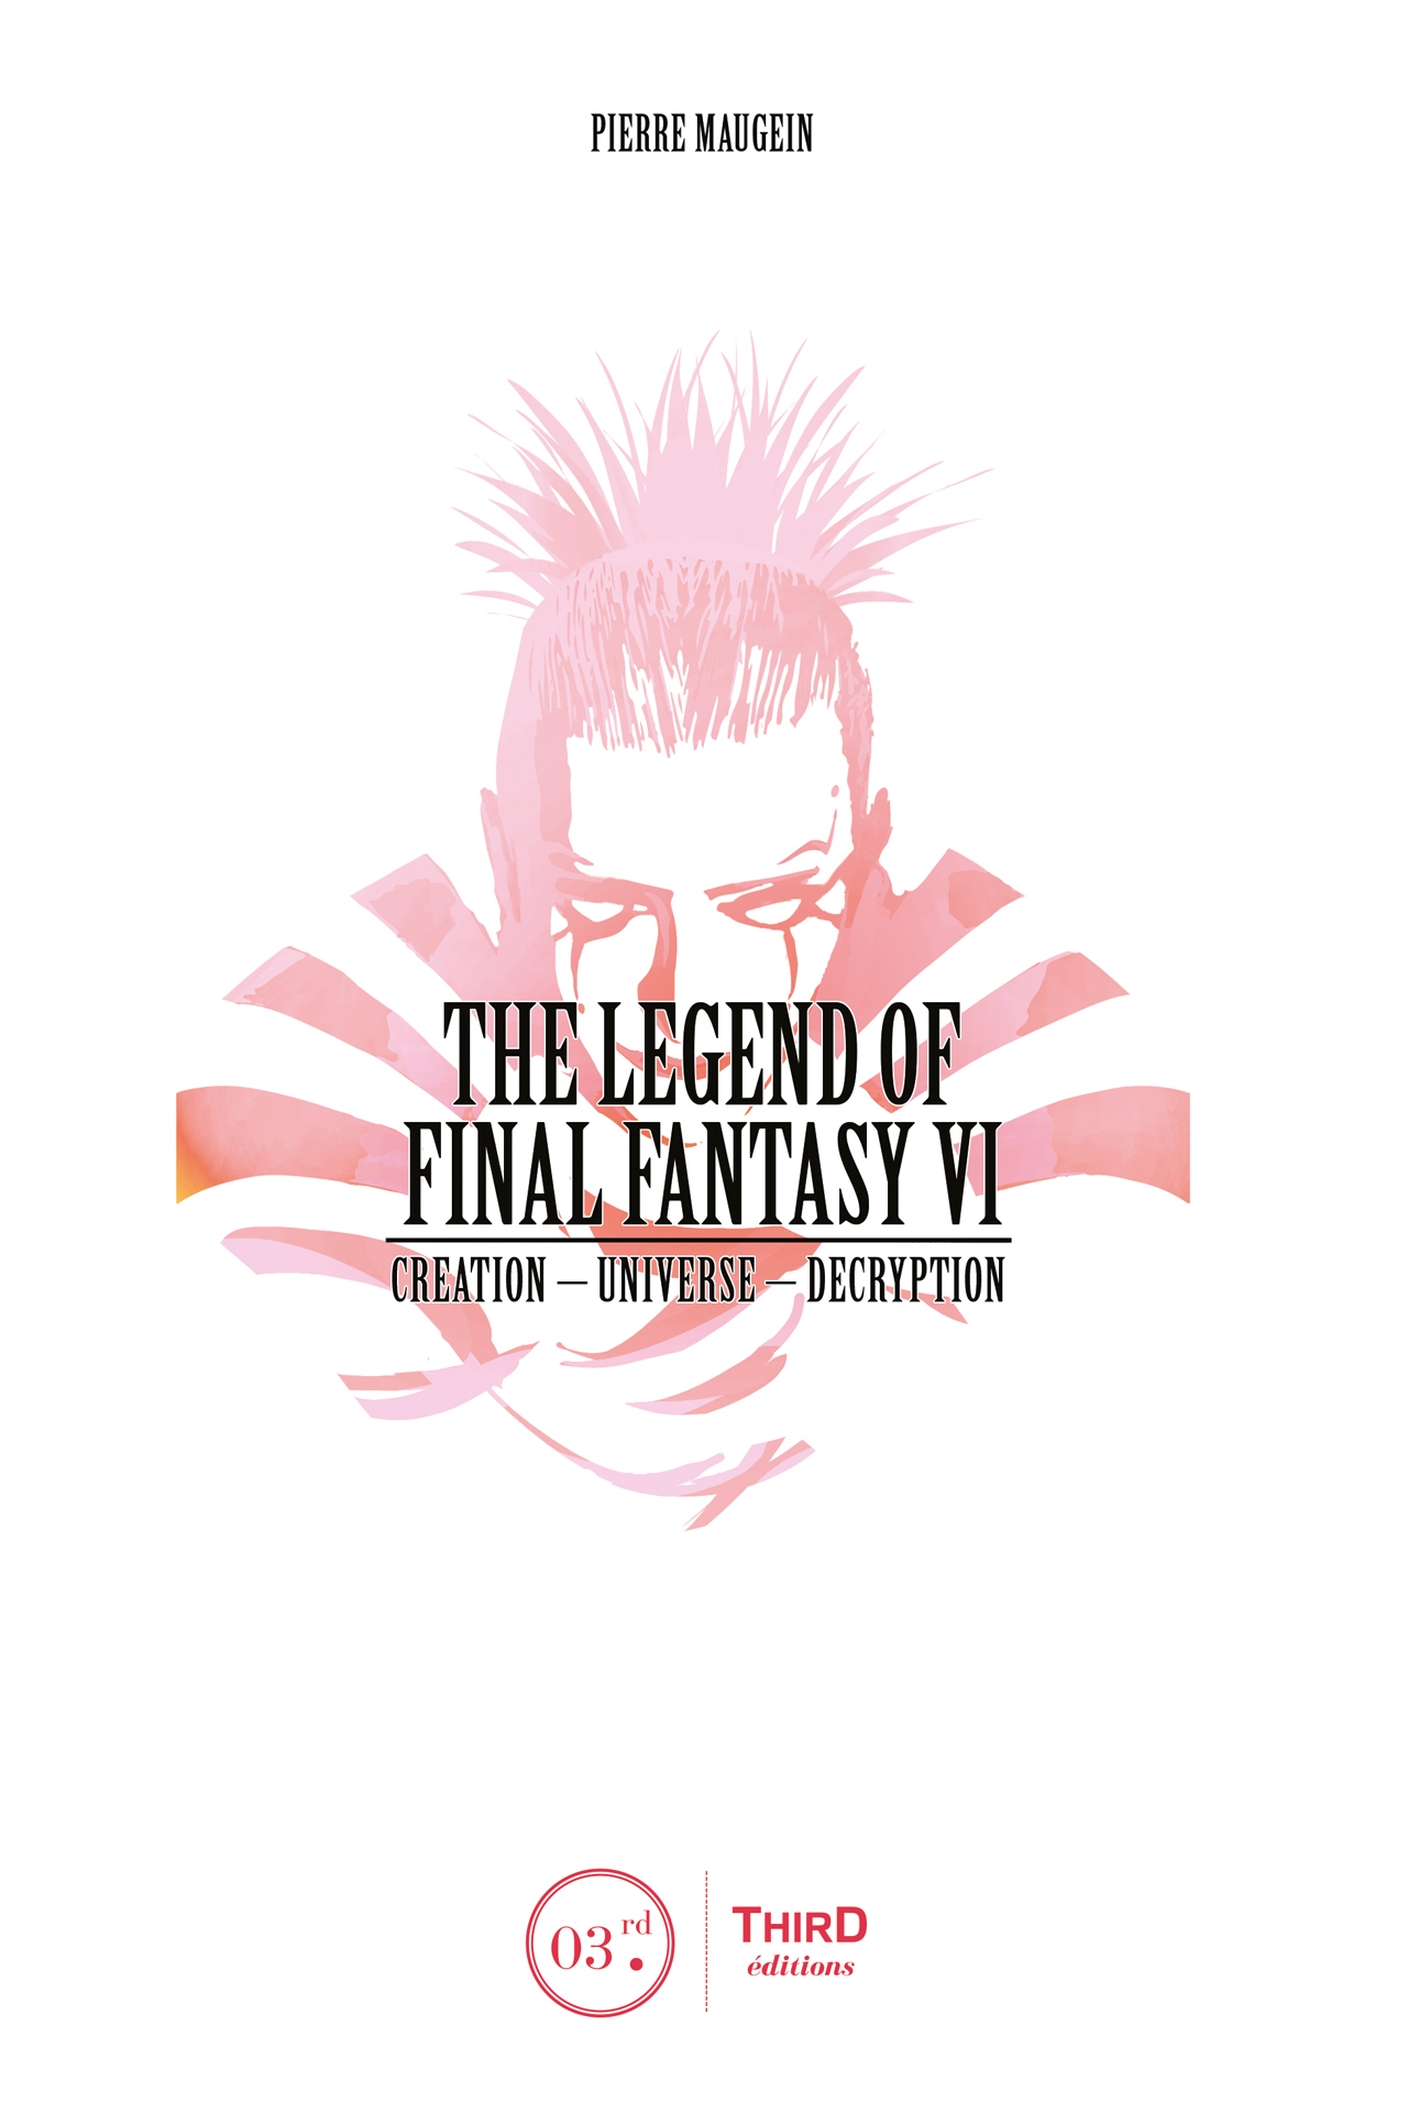 The Legend of Final Fantasy VI